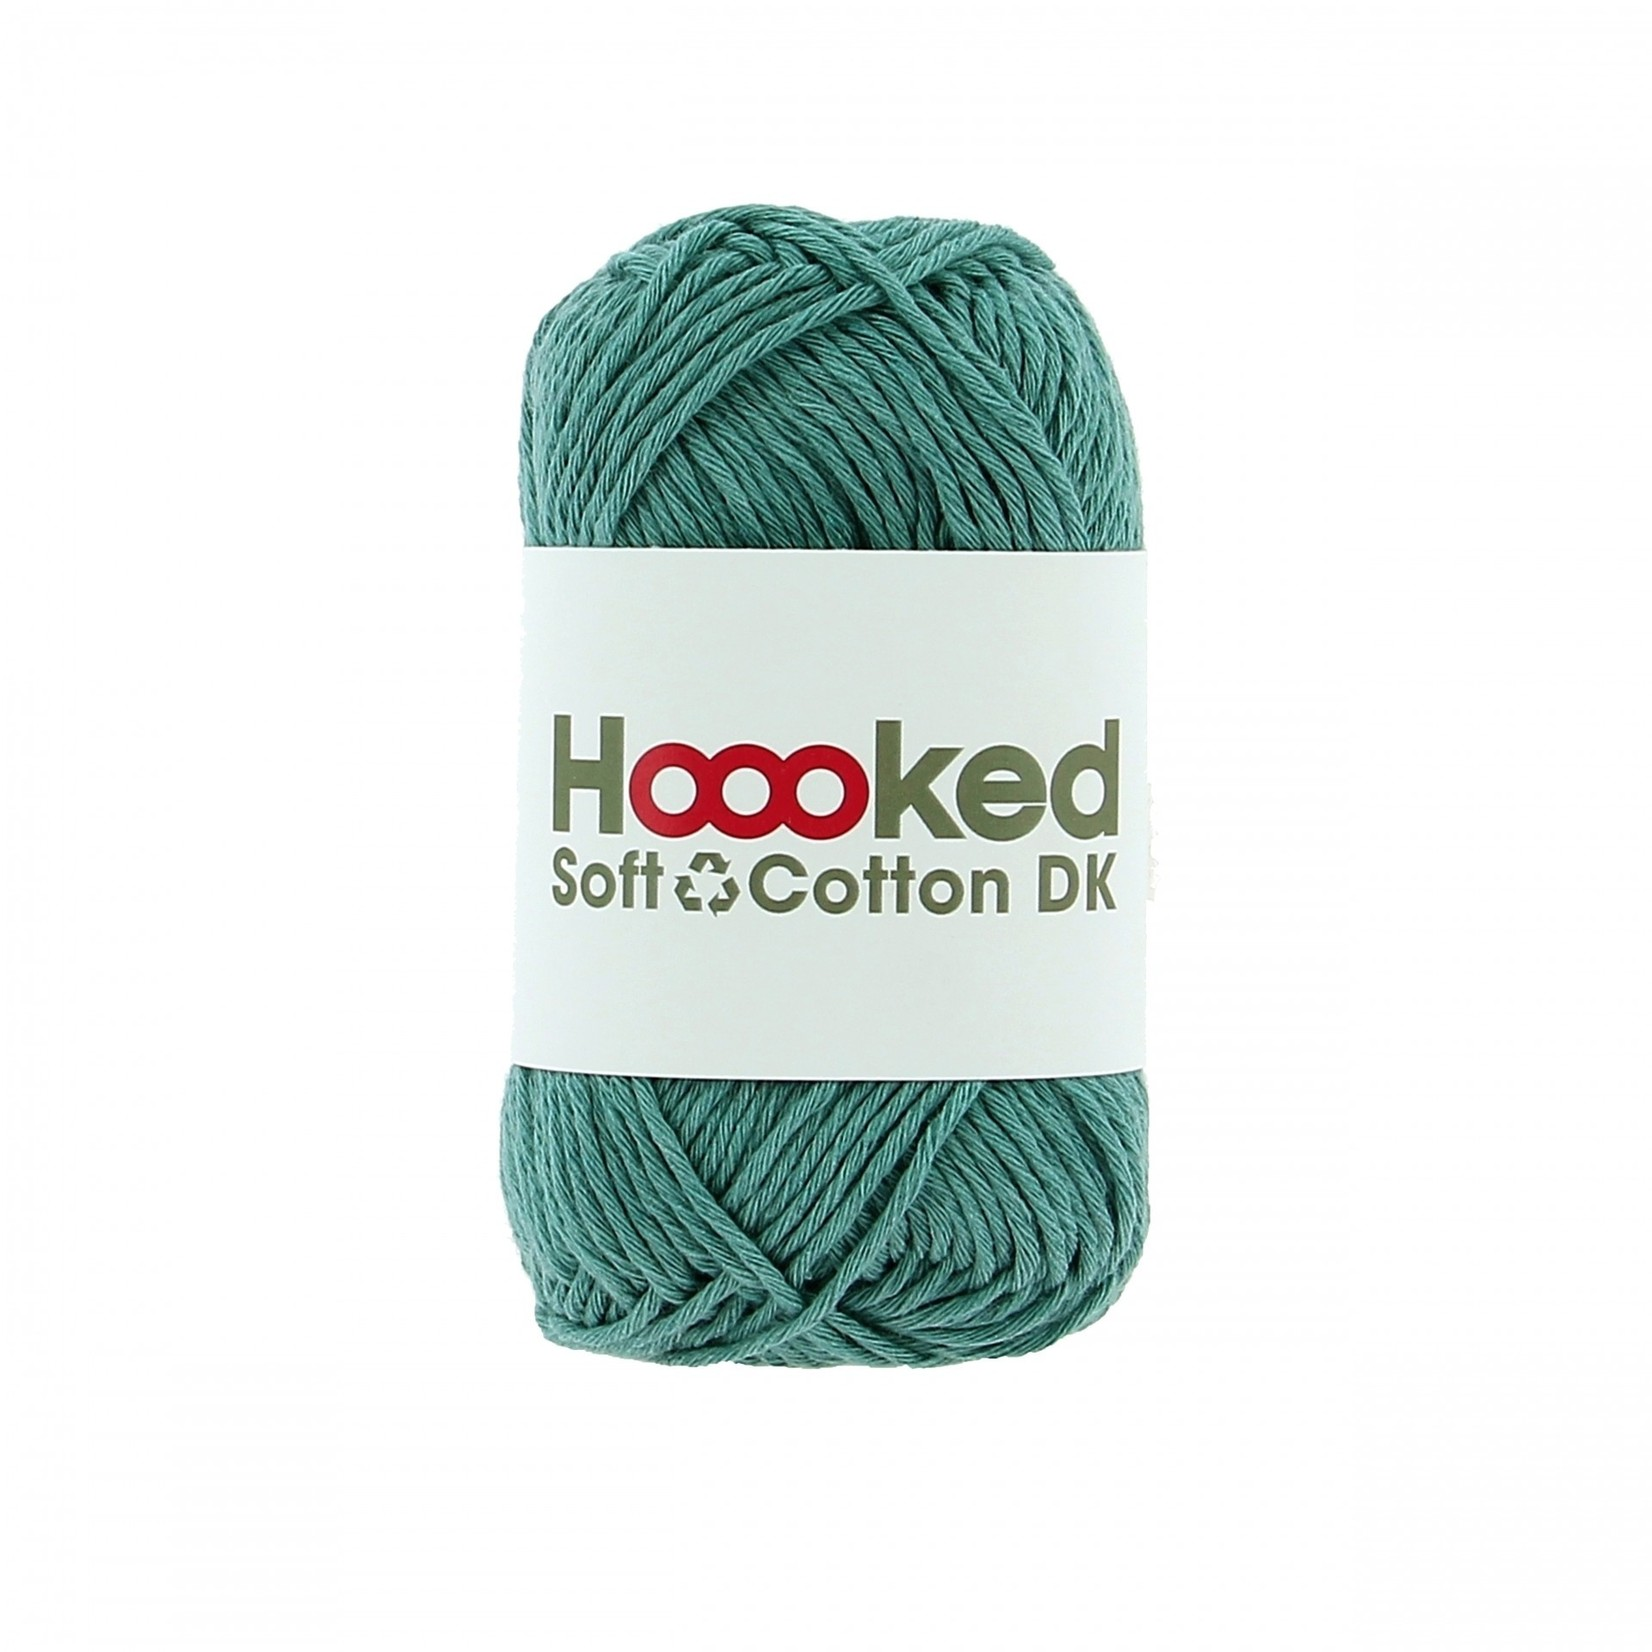 Hoooked Hoooked Soft Cotton DK Oslo Fern bundel 5 x 50 gr. / 85 m.